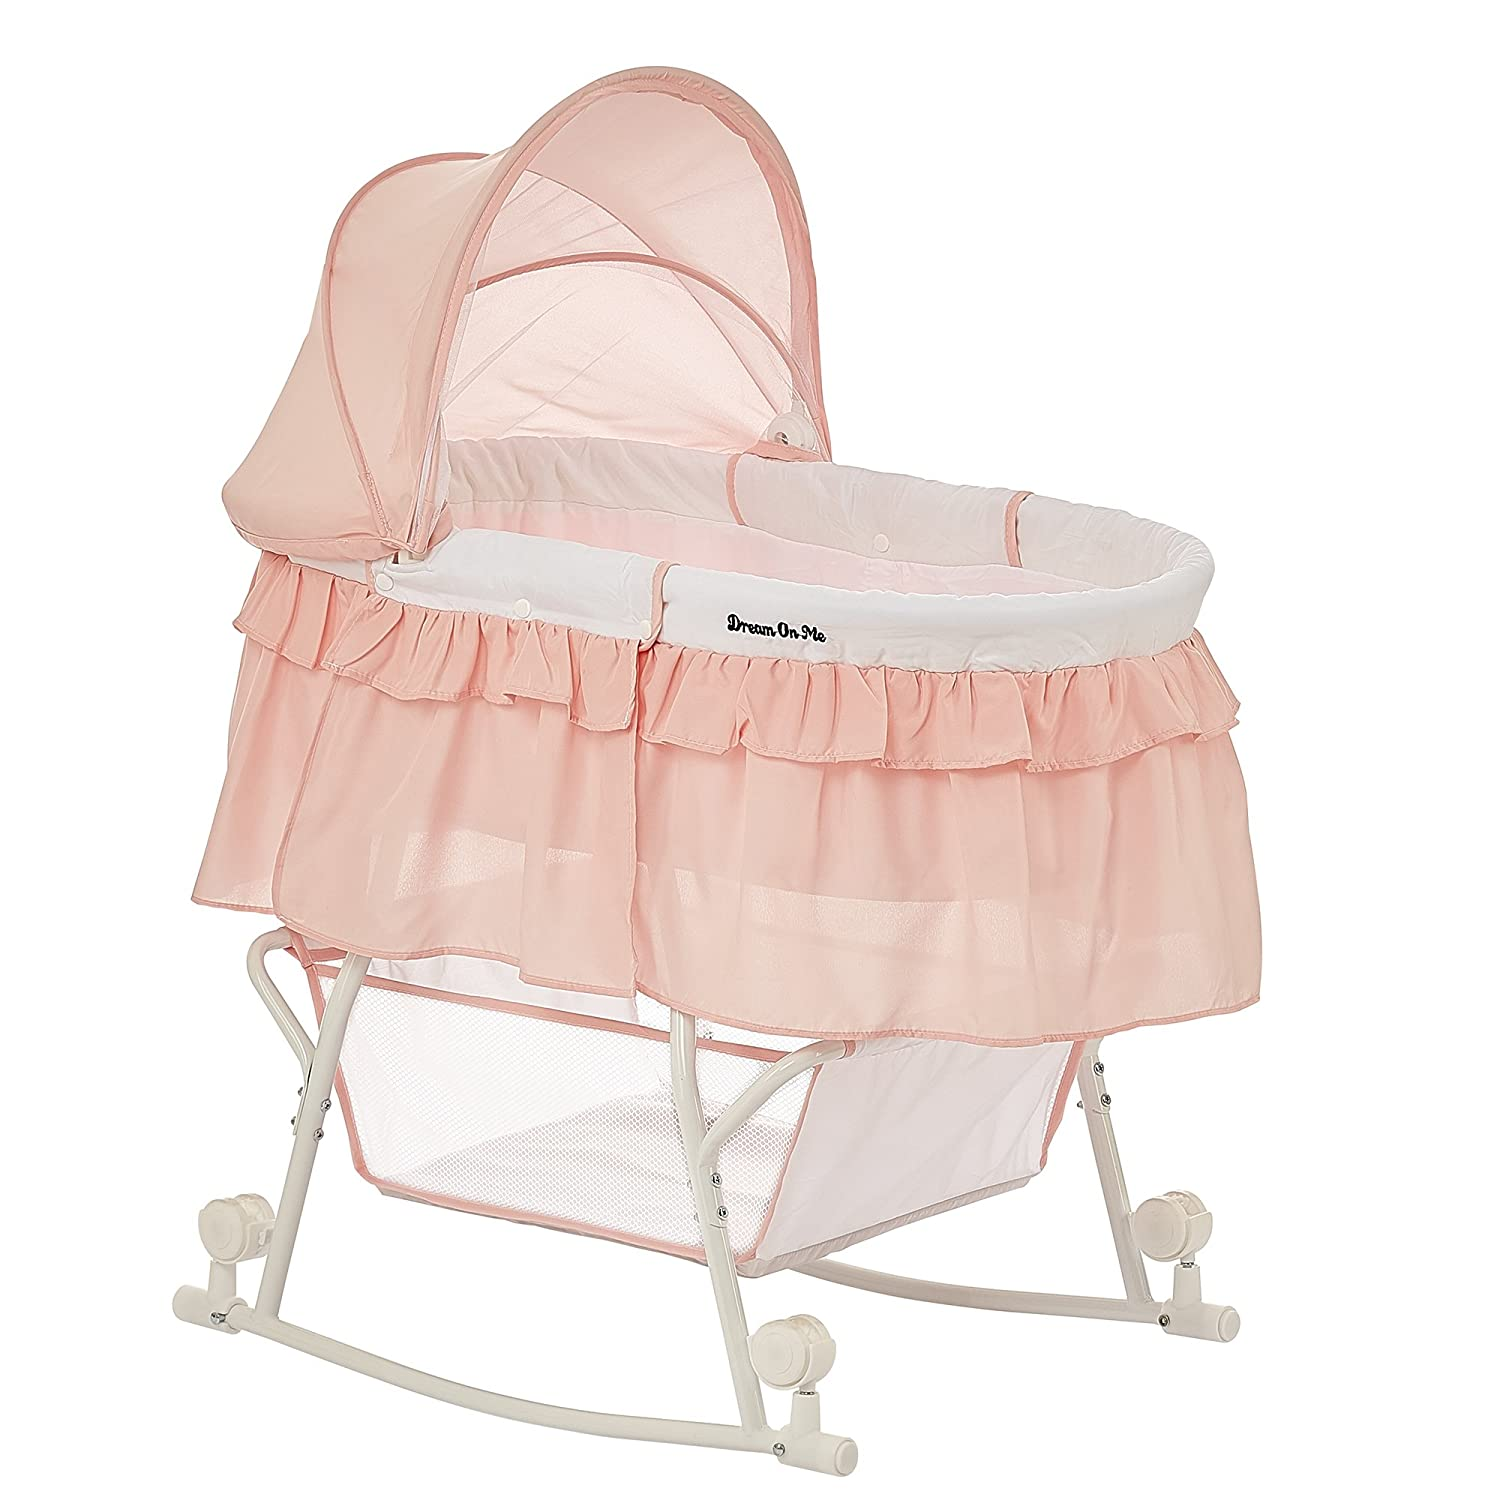 Dream on Me Lacy Portable 2-in-1 Bassinet 442-RQ